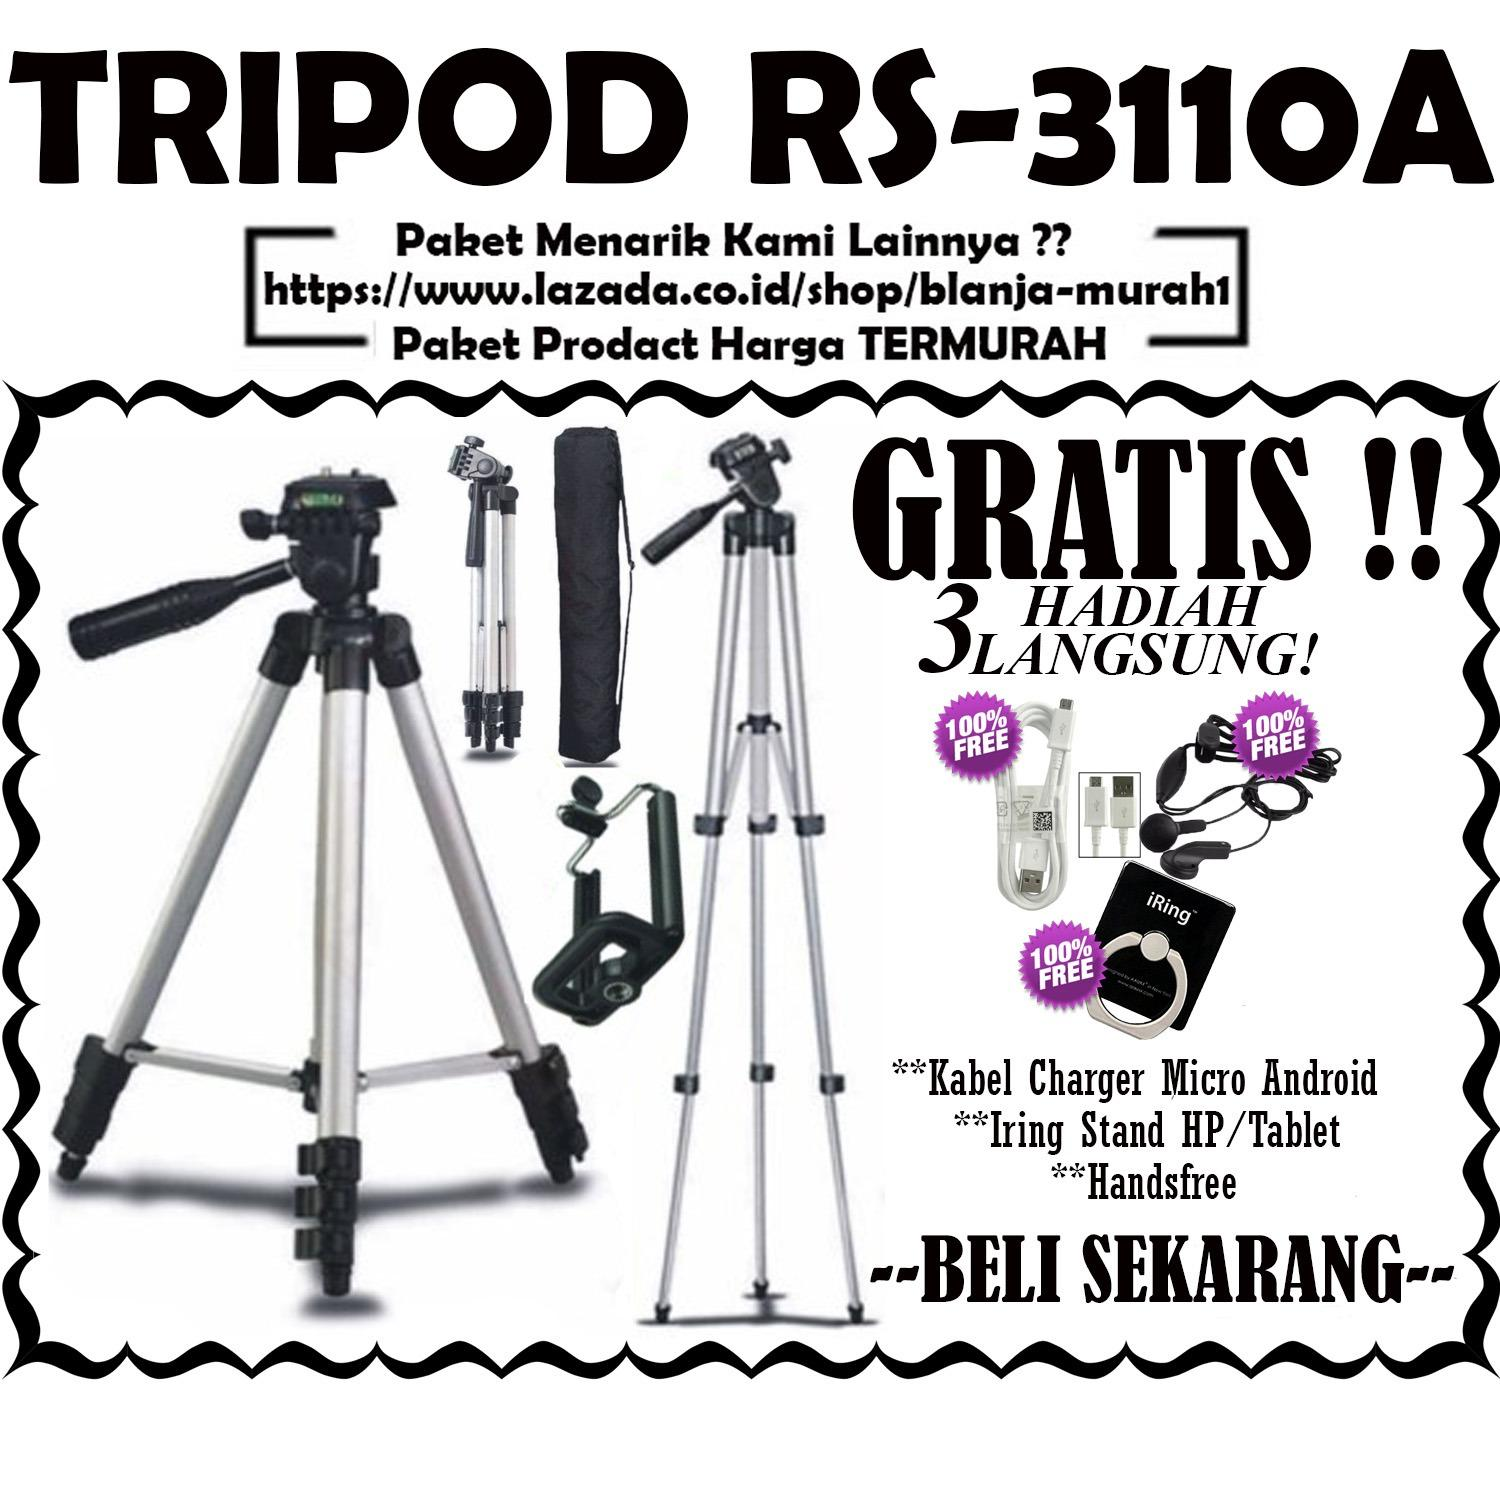 Tripod RS-3110A 1 Meter by Ring Star Include Holder U for Smartphone / Universal ( Camera Digital , Action Cam, DSLR , SLR ) - GRATIS Kabel Charger Micro Android + Iring Stand HP/Tablet & Handsfree